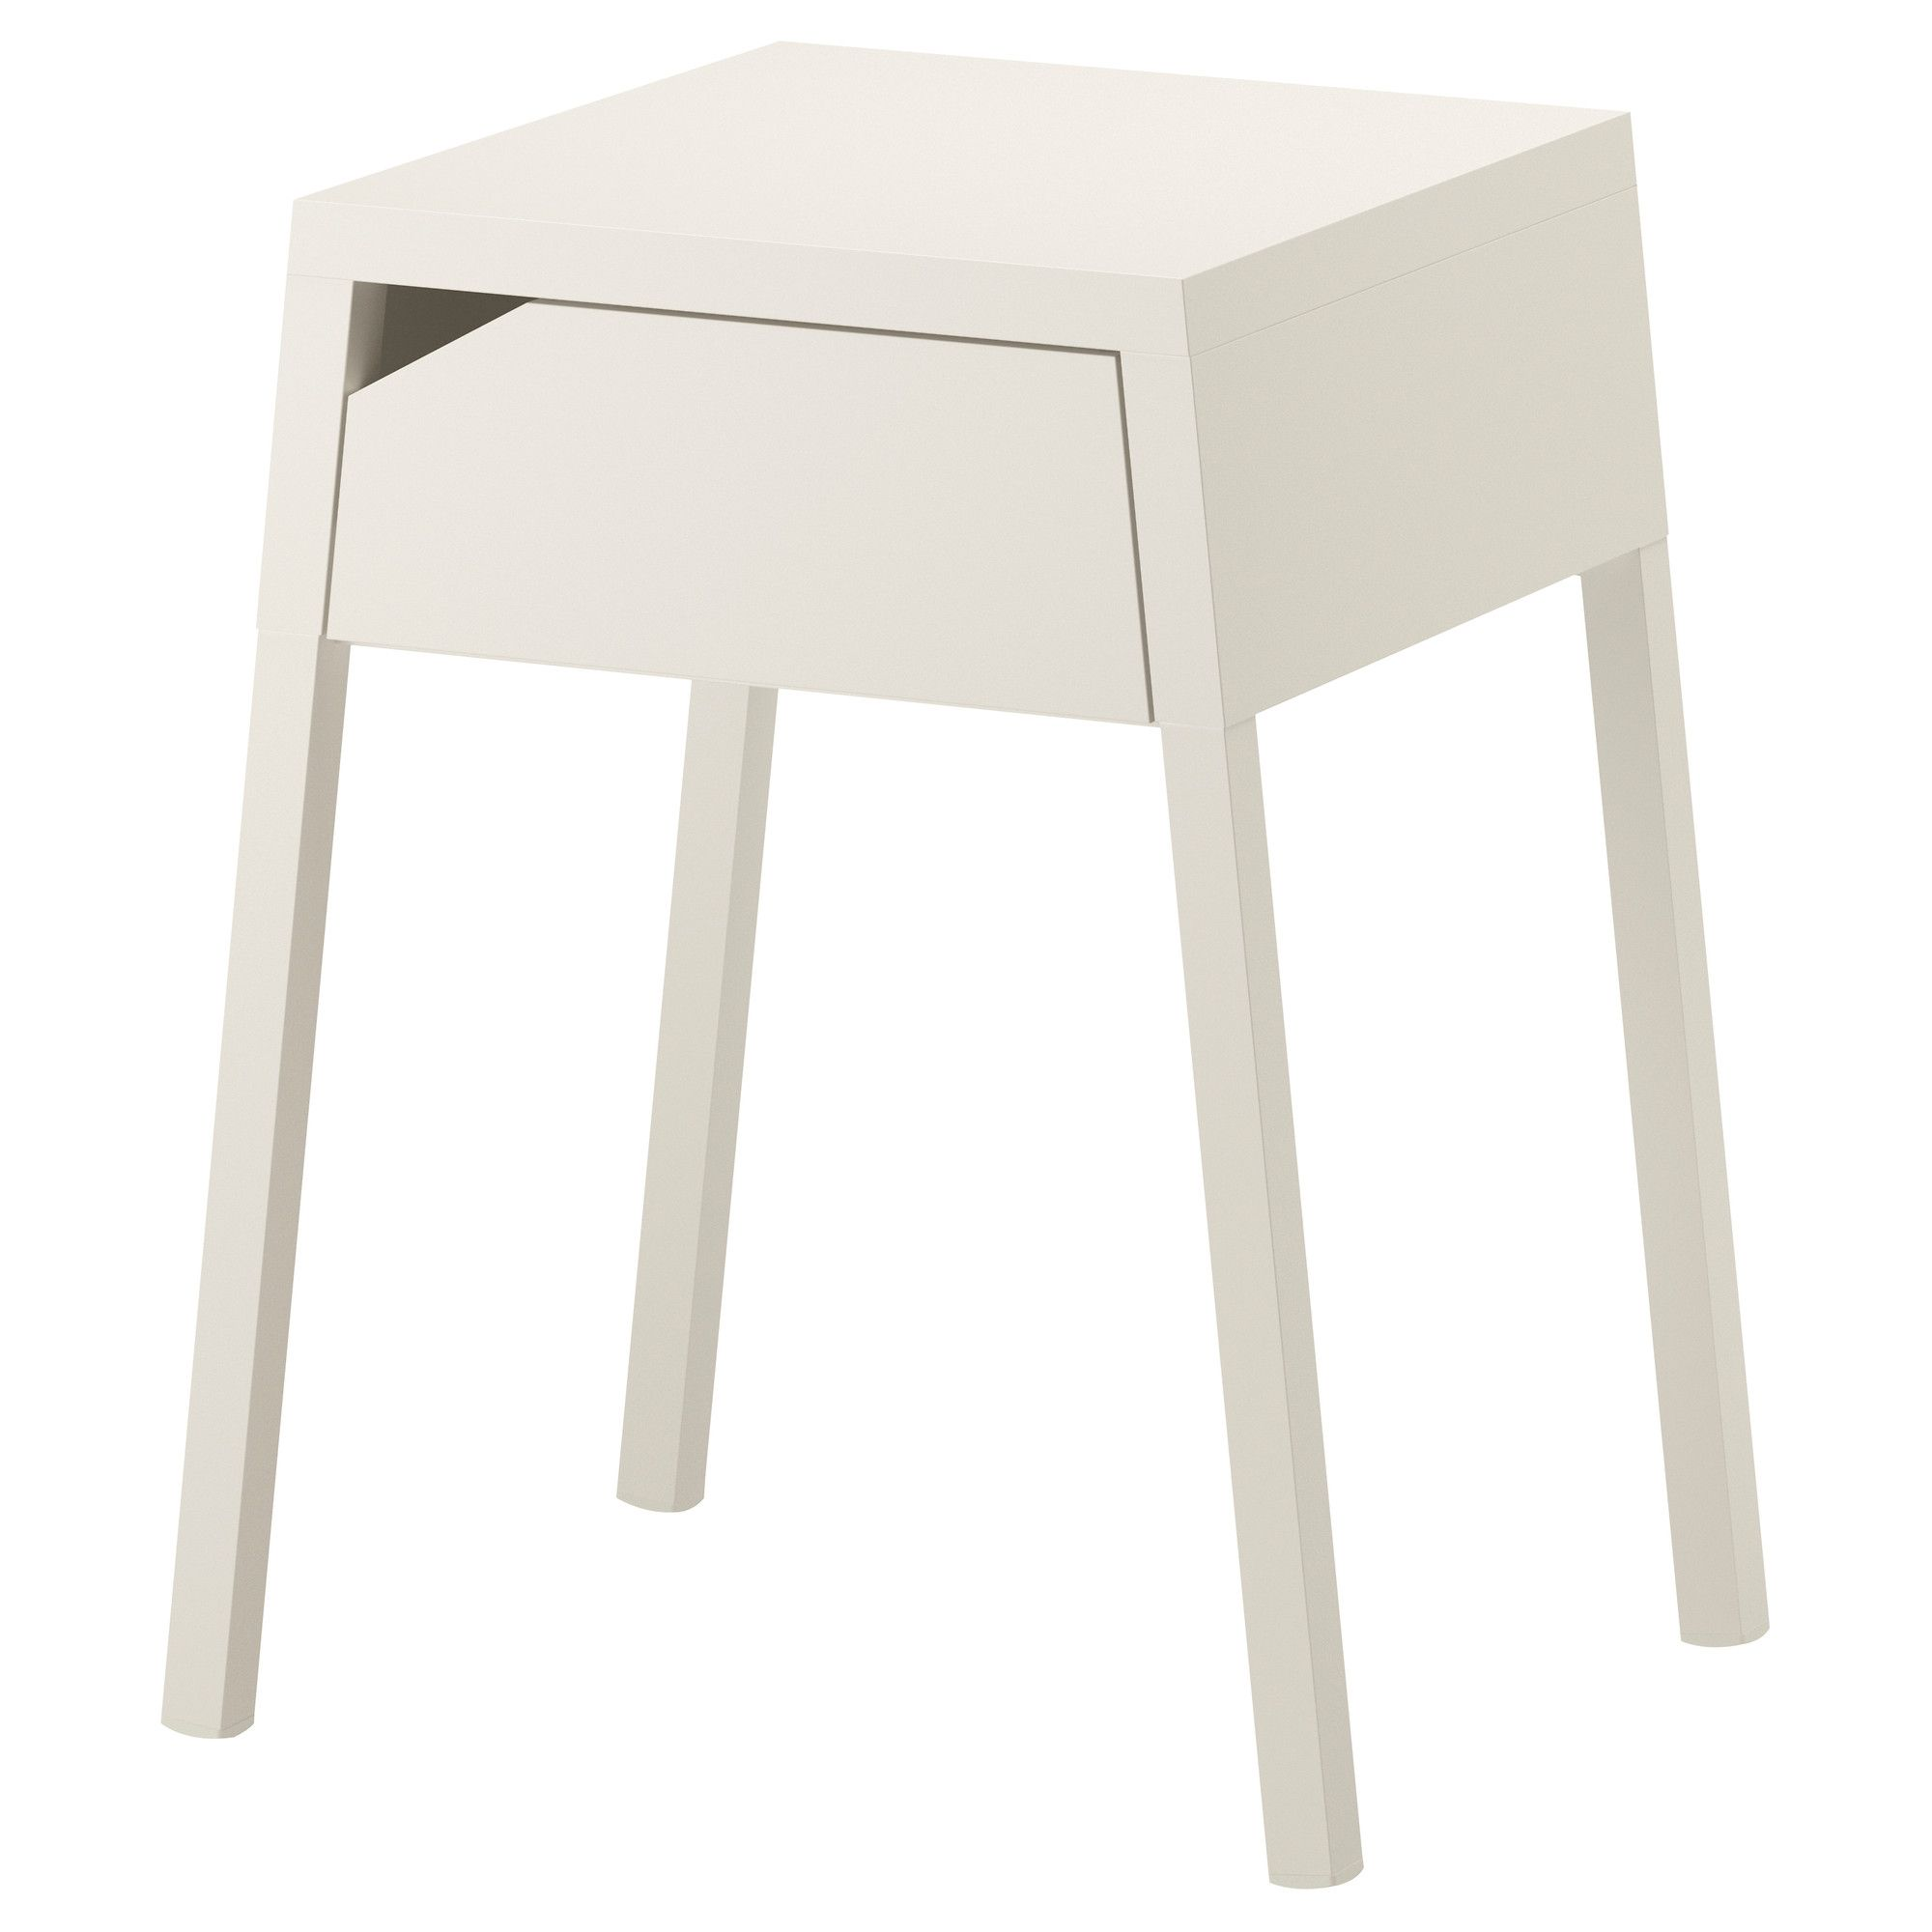 Mobilier Et Decoration Interieur Et Exterieur Table De Chevet Ikea Table De Chevet Et Table De Chevet Blanche